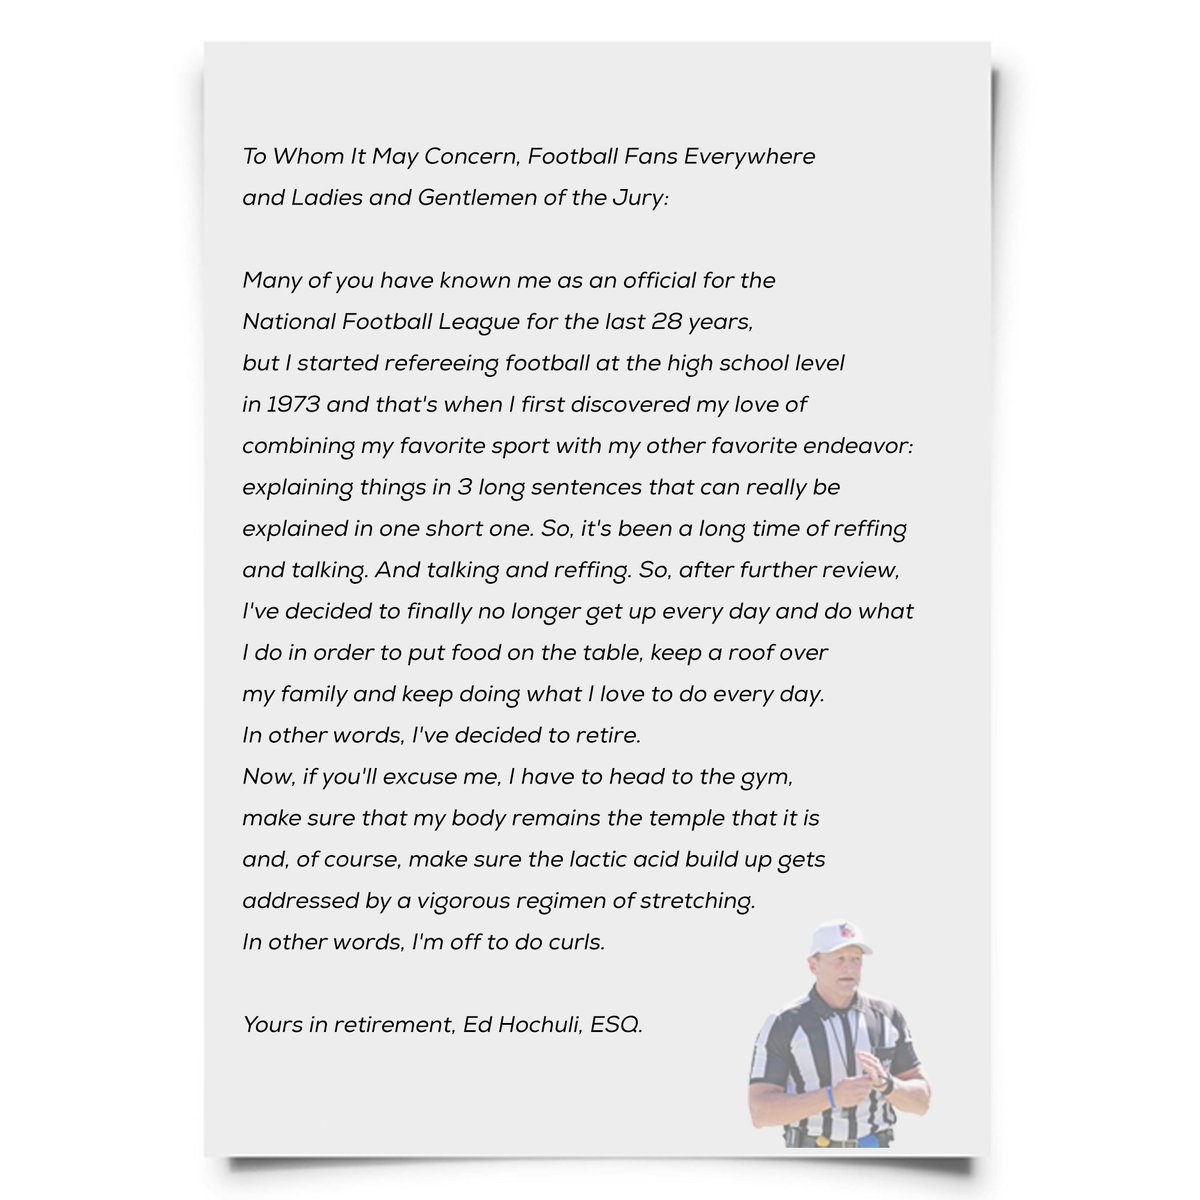 Rich eisen show on twitter exclusive ed hochuli retirement letter rich eisen show on twitter exclusive ed hochuli retirement letter he sent to nfl thecheapjerseys